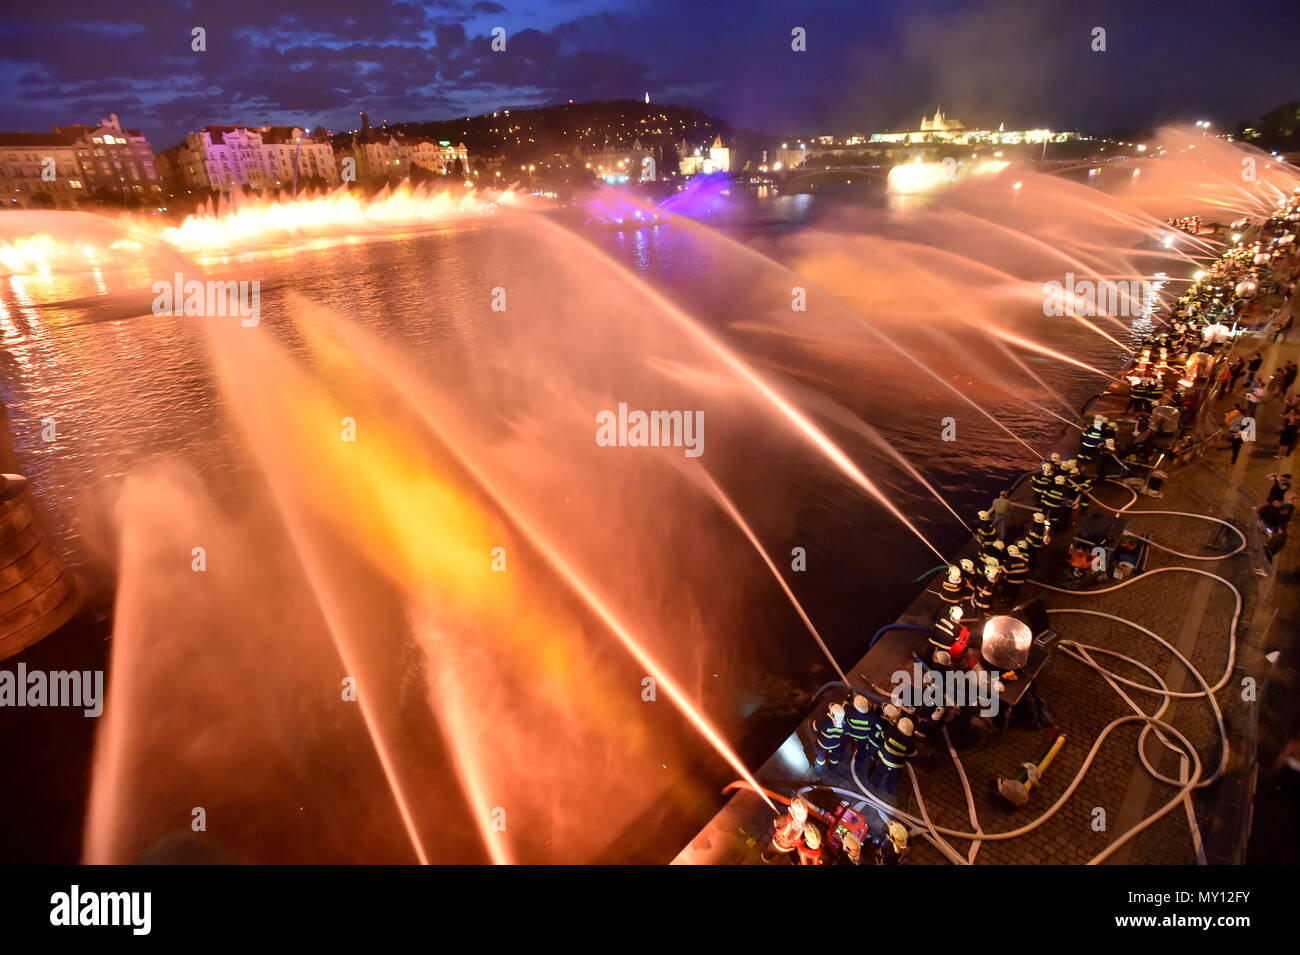 """Some 1,000 firefighters from across the country create a musical fountain on the Vltava River (Moldau) in Prague, during a rehearsal on Friday, June 1st, 2018, prior to the tomorrow's celebration of the 100th anniversary of Czechoslovakia's establishment. The fountain was be formed by both professional and voluntary firefighters using approximately 200 hose nozzles above the river in the centre of Prague, between Jirasek and Palacky bridges. """"A light concert"""" and """"a water ballet"""" using several thousand cubic metres of water was orchestrated in a single moment. Music as well as colour lights ac Stock Photo"""